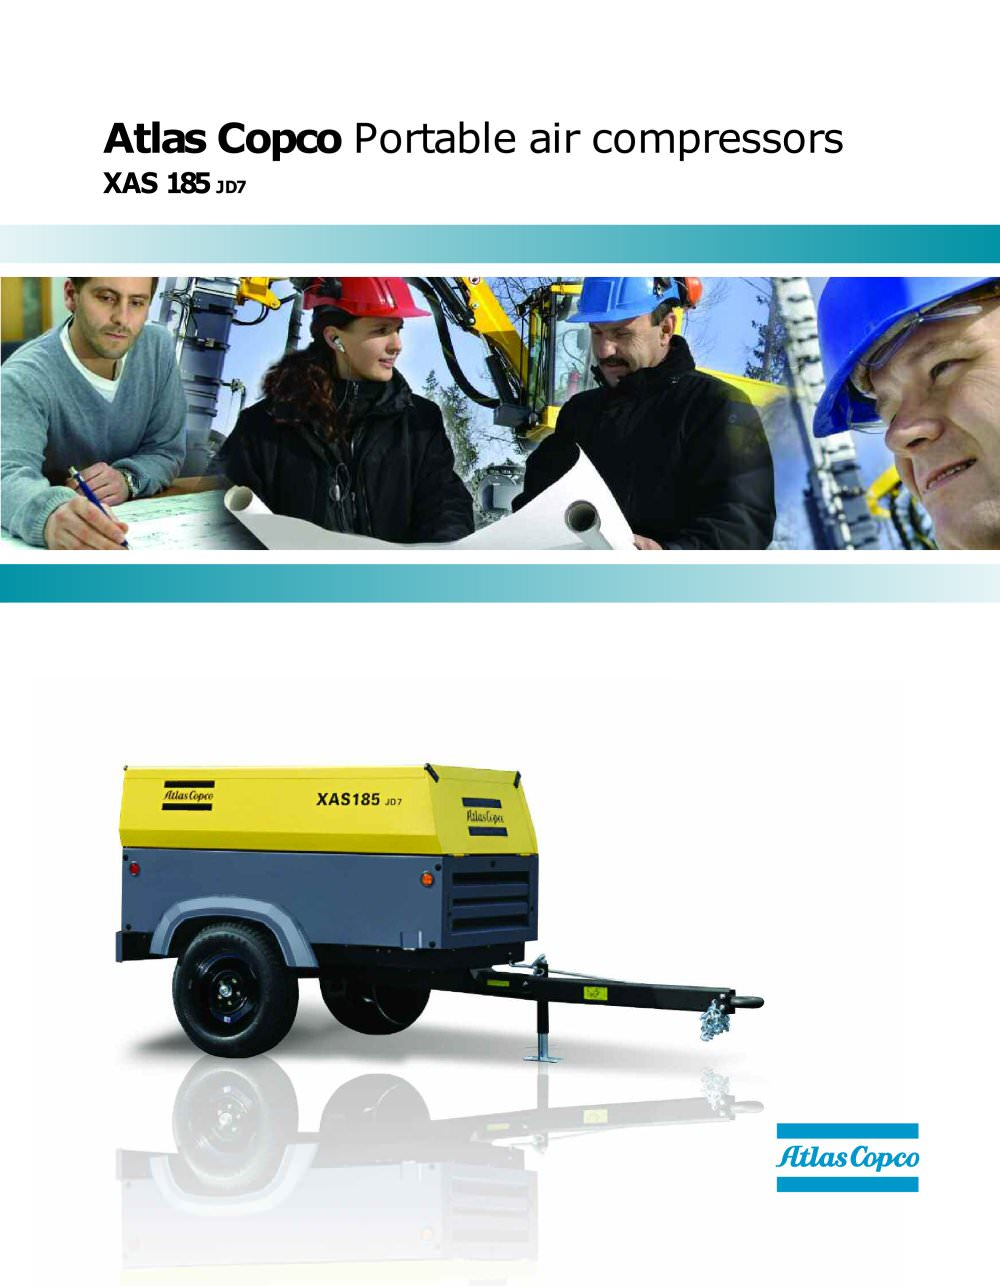 Atlas Copco Portable air compressors XAS 185 JD7 - 1 / 2 Pages